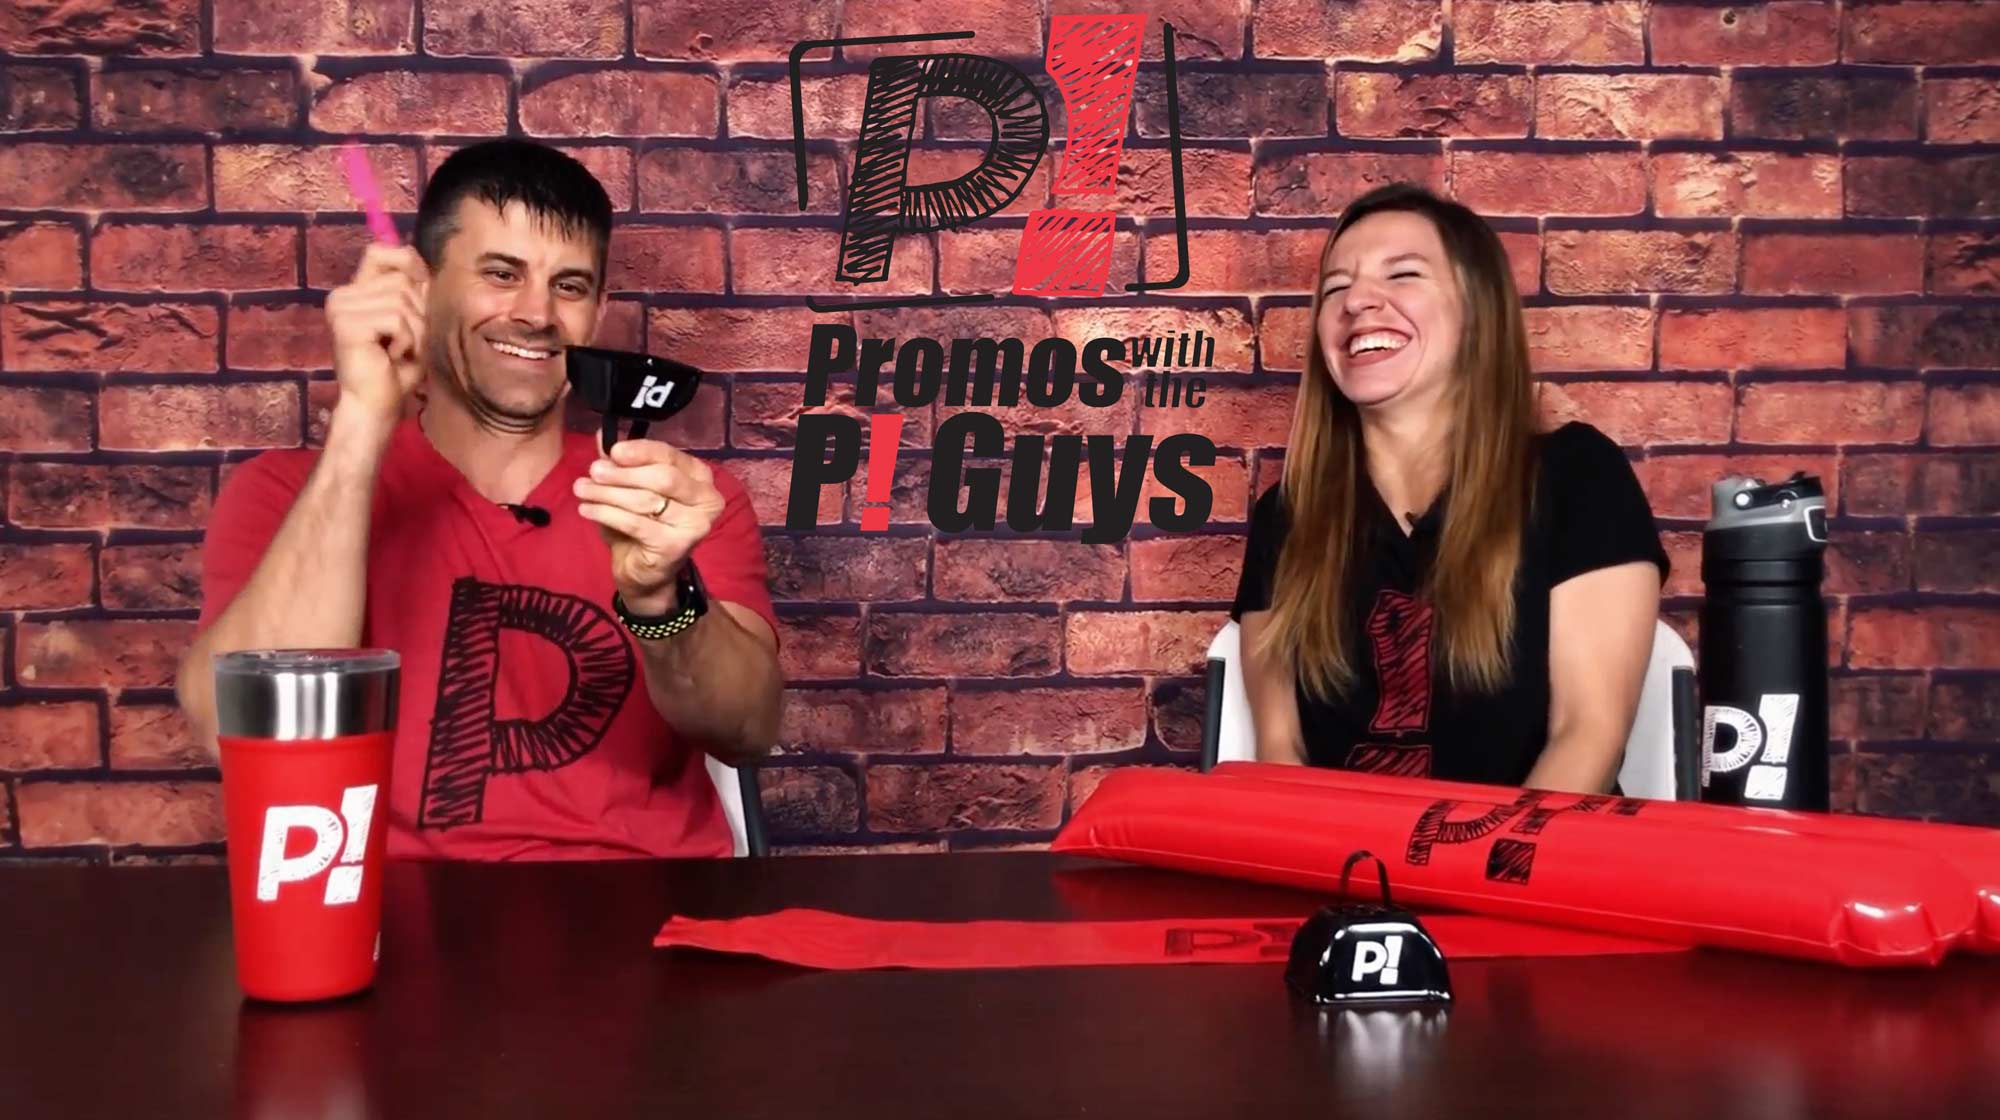 Promos with the P! Guys - Episode 32 - Thundersticks Noisemakers